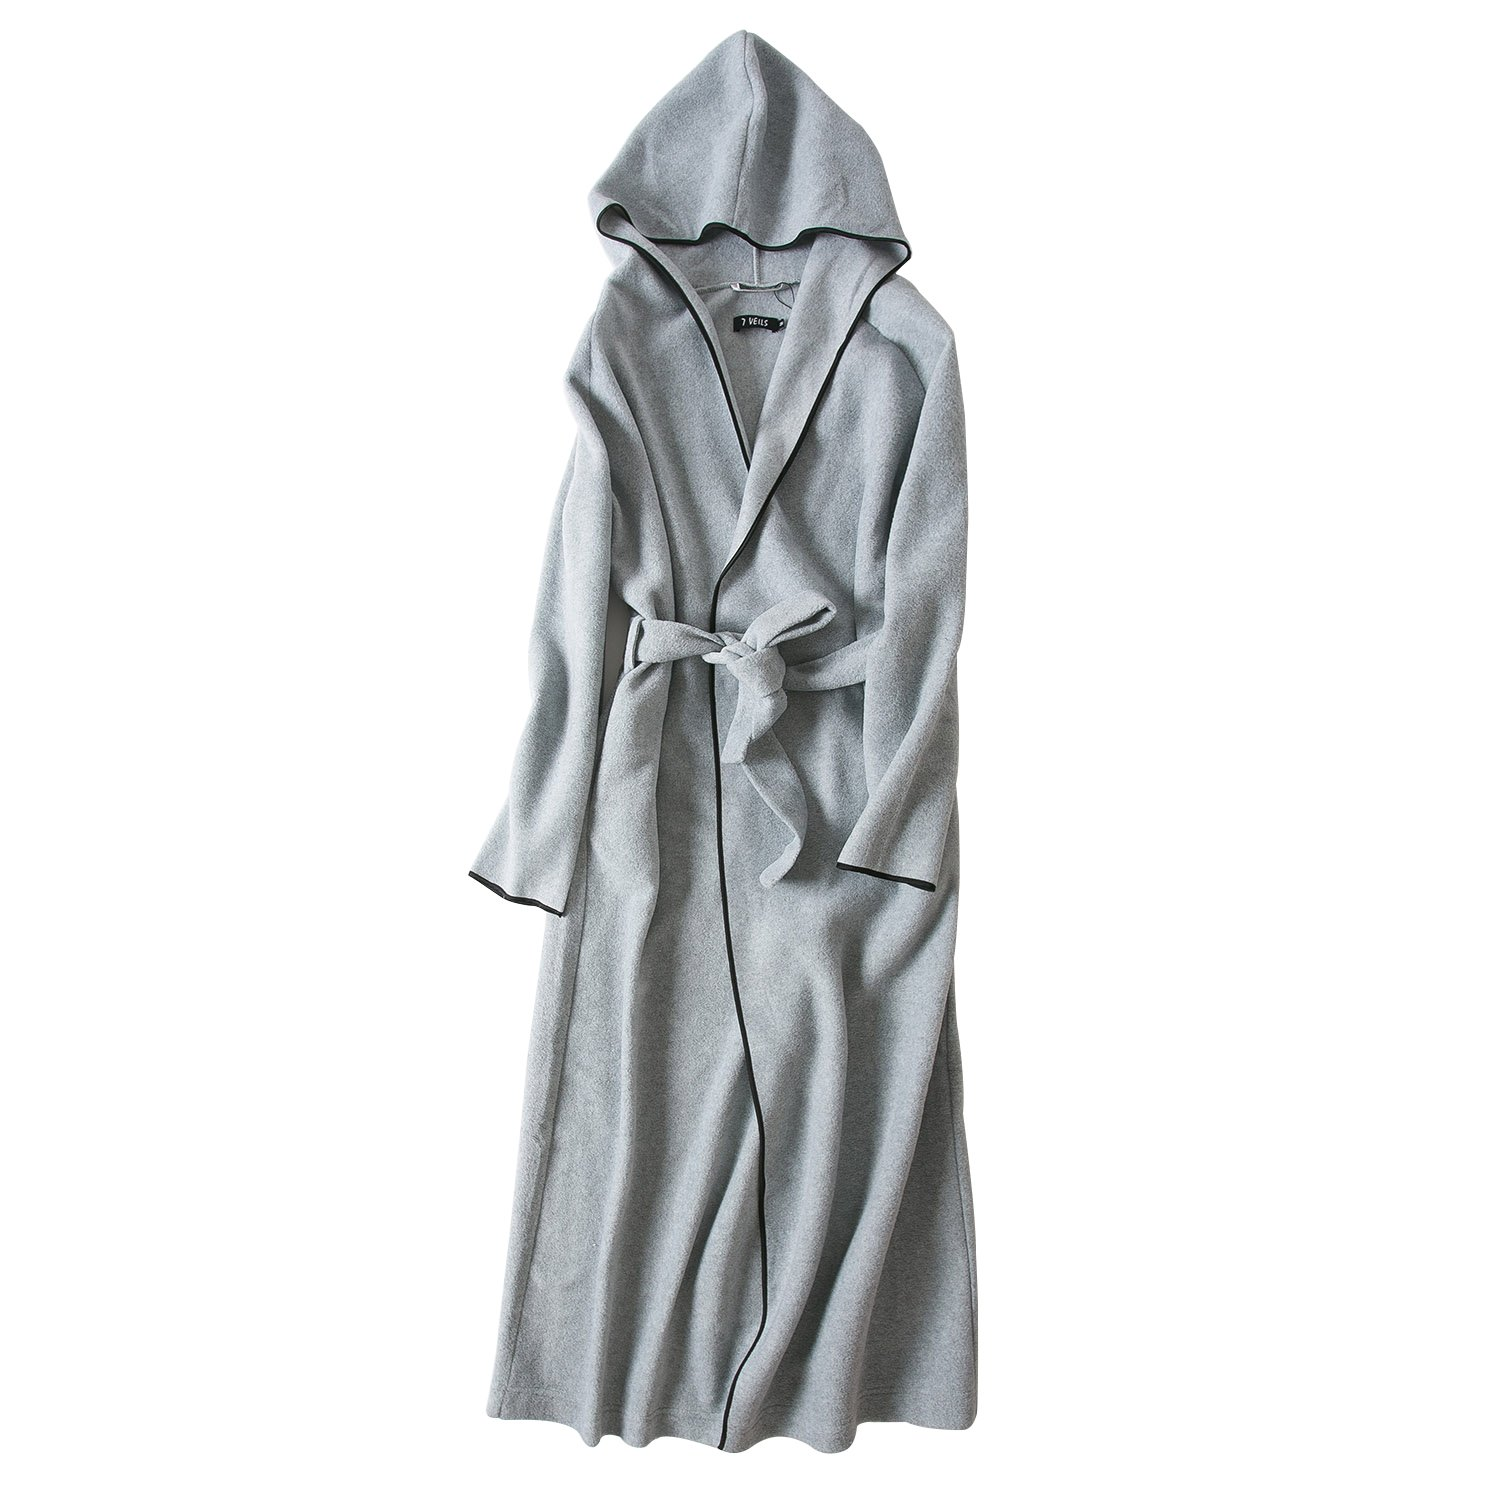 c1bb3b2fcb 7 VEILS Women and Men Microfleece Ultra Long Floor-Length Hooded Bathrobes   Amazon.ca  Clothing   Accessories